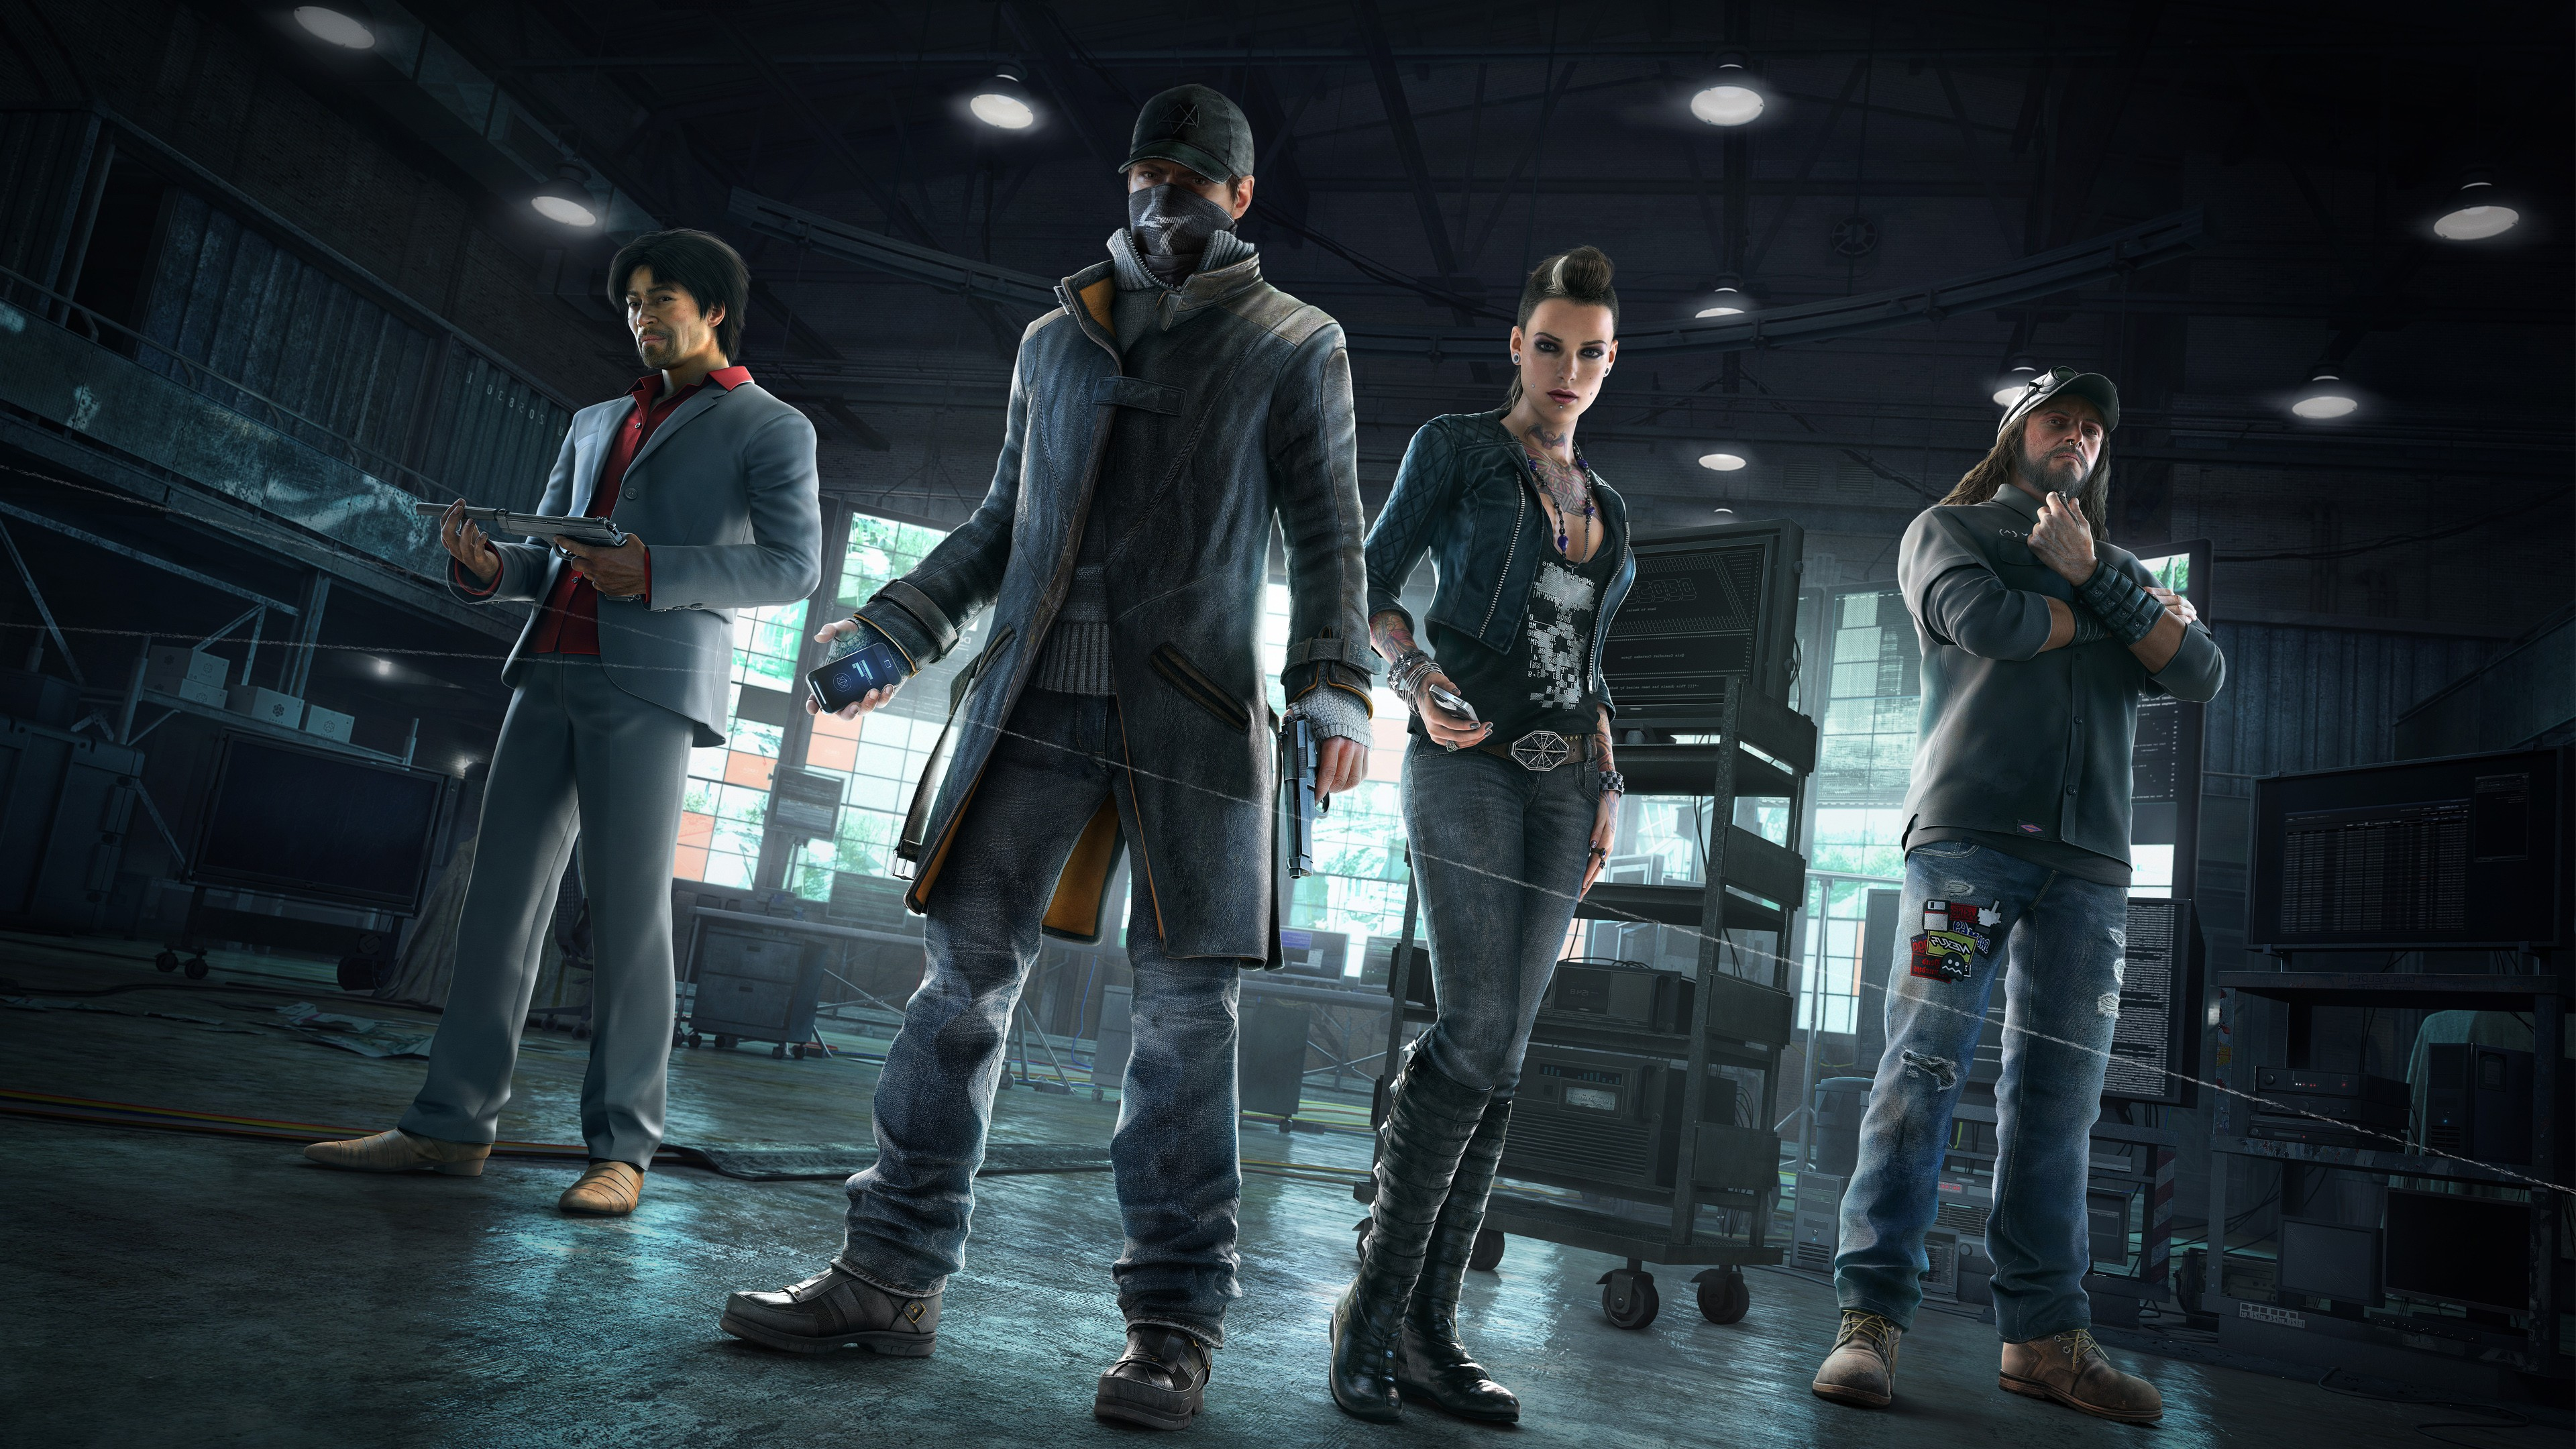 480x854 Watch Dogs 2 Android One Hd 4k Wallpapers Images